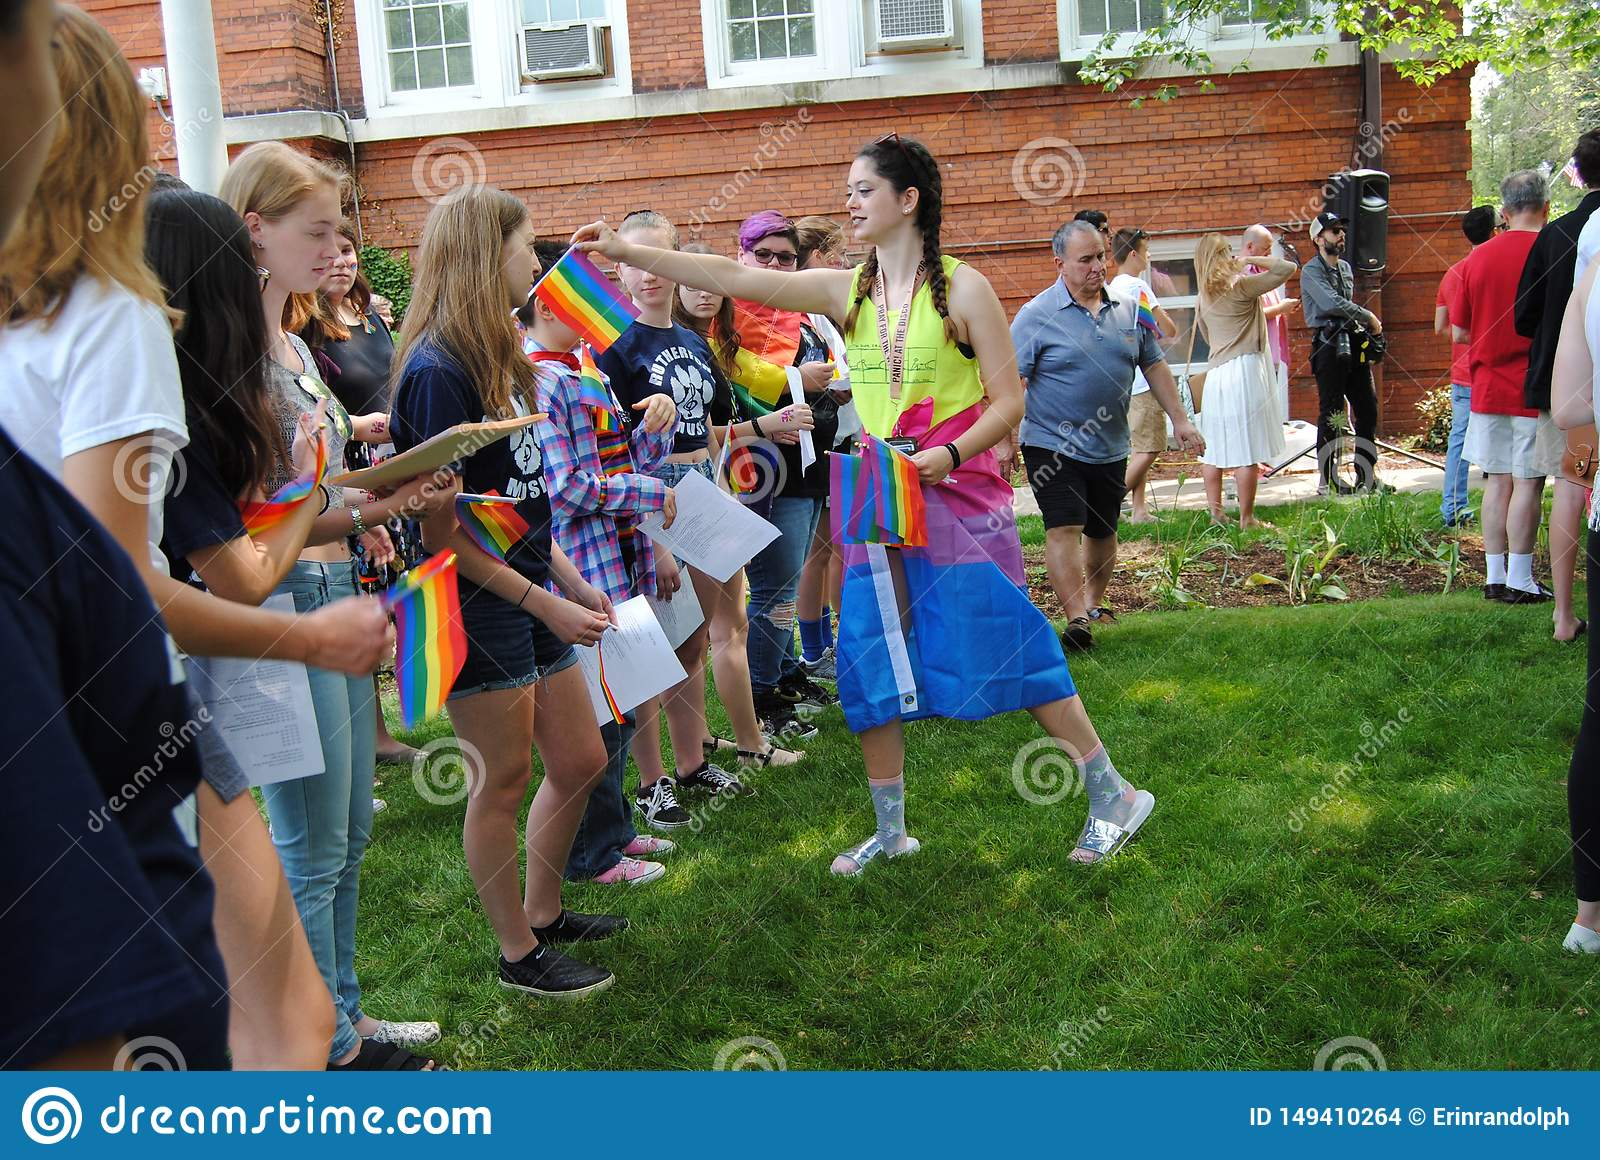 Pride Flags, Rainbow Flags at a Pride Flag Raising Event, Rutherford, NJ, USA